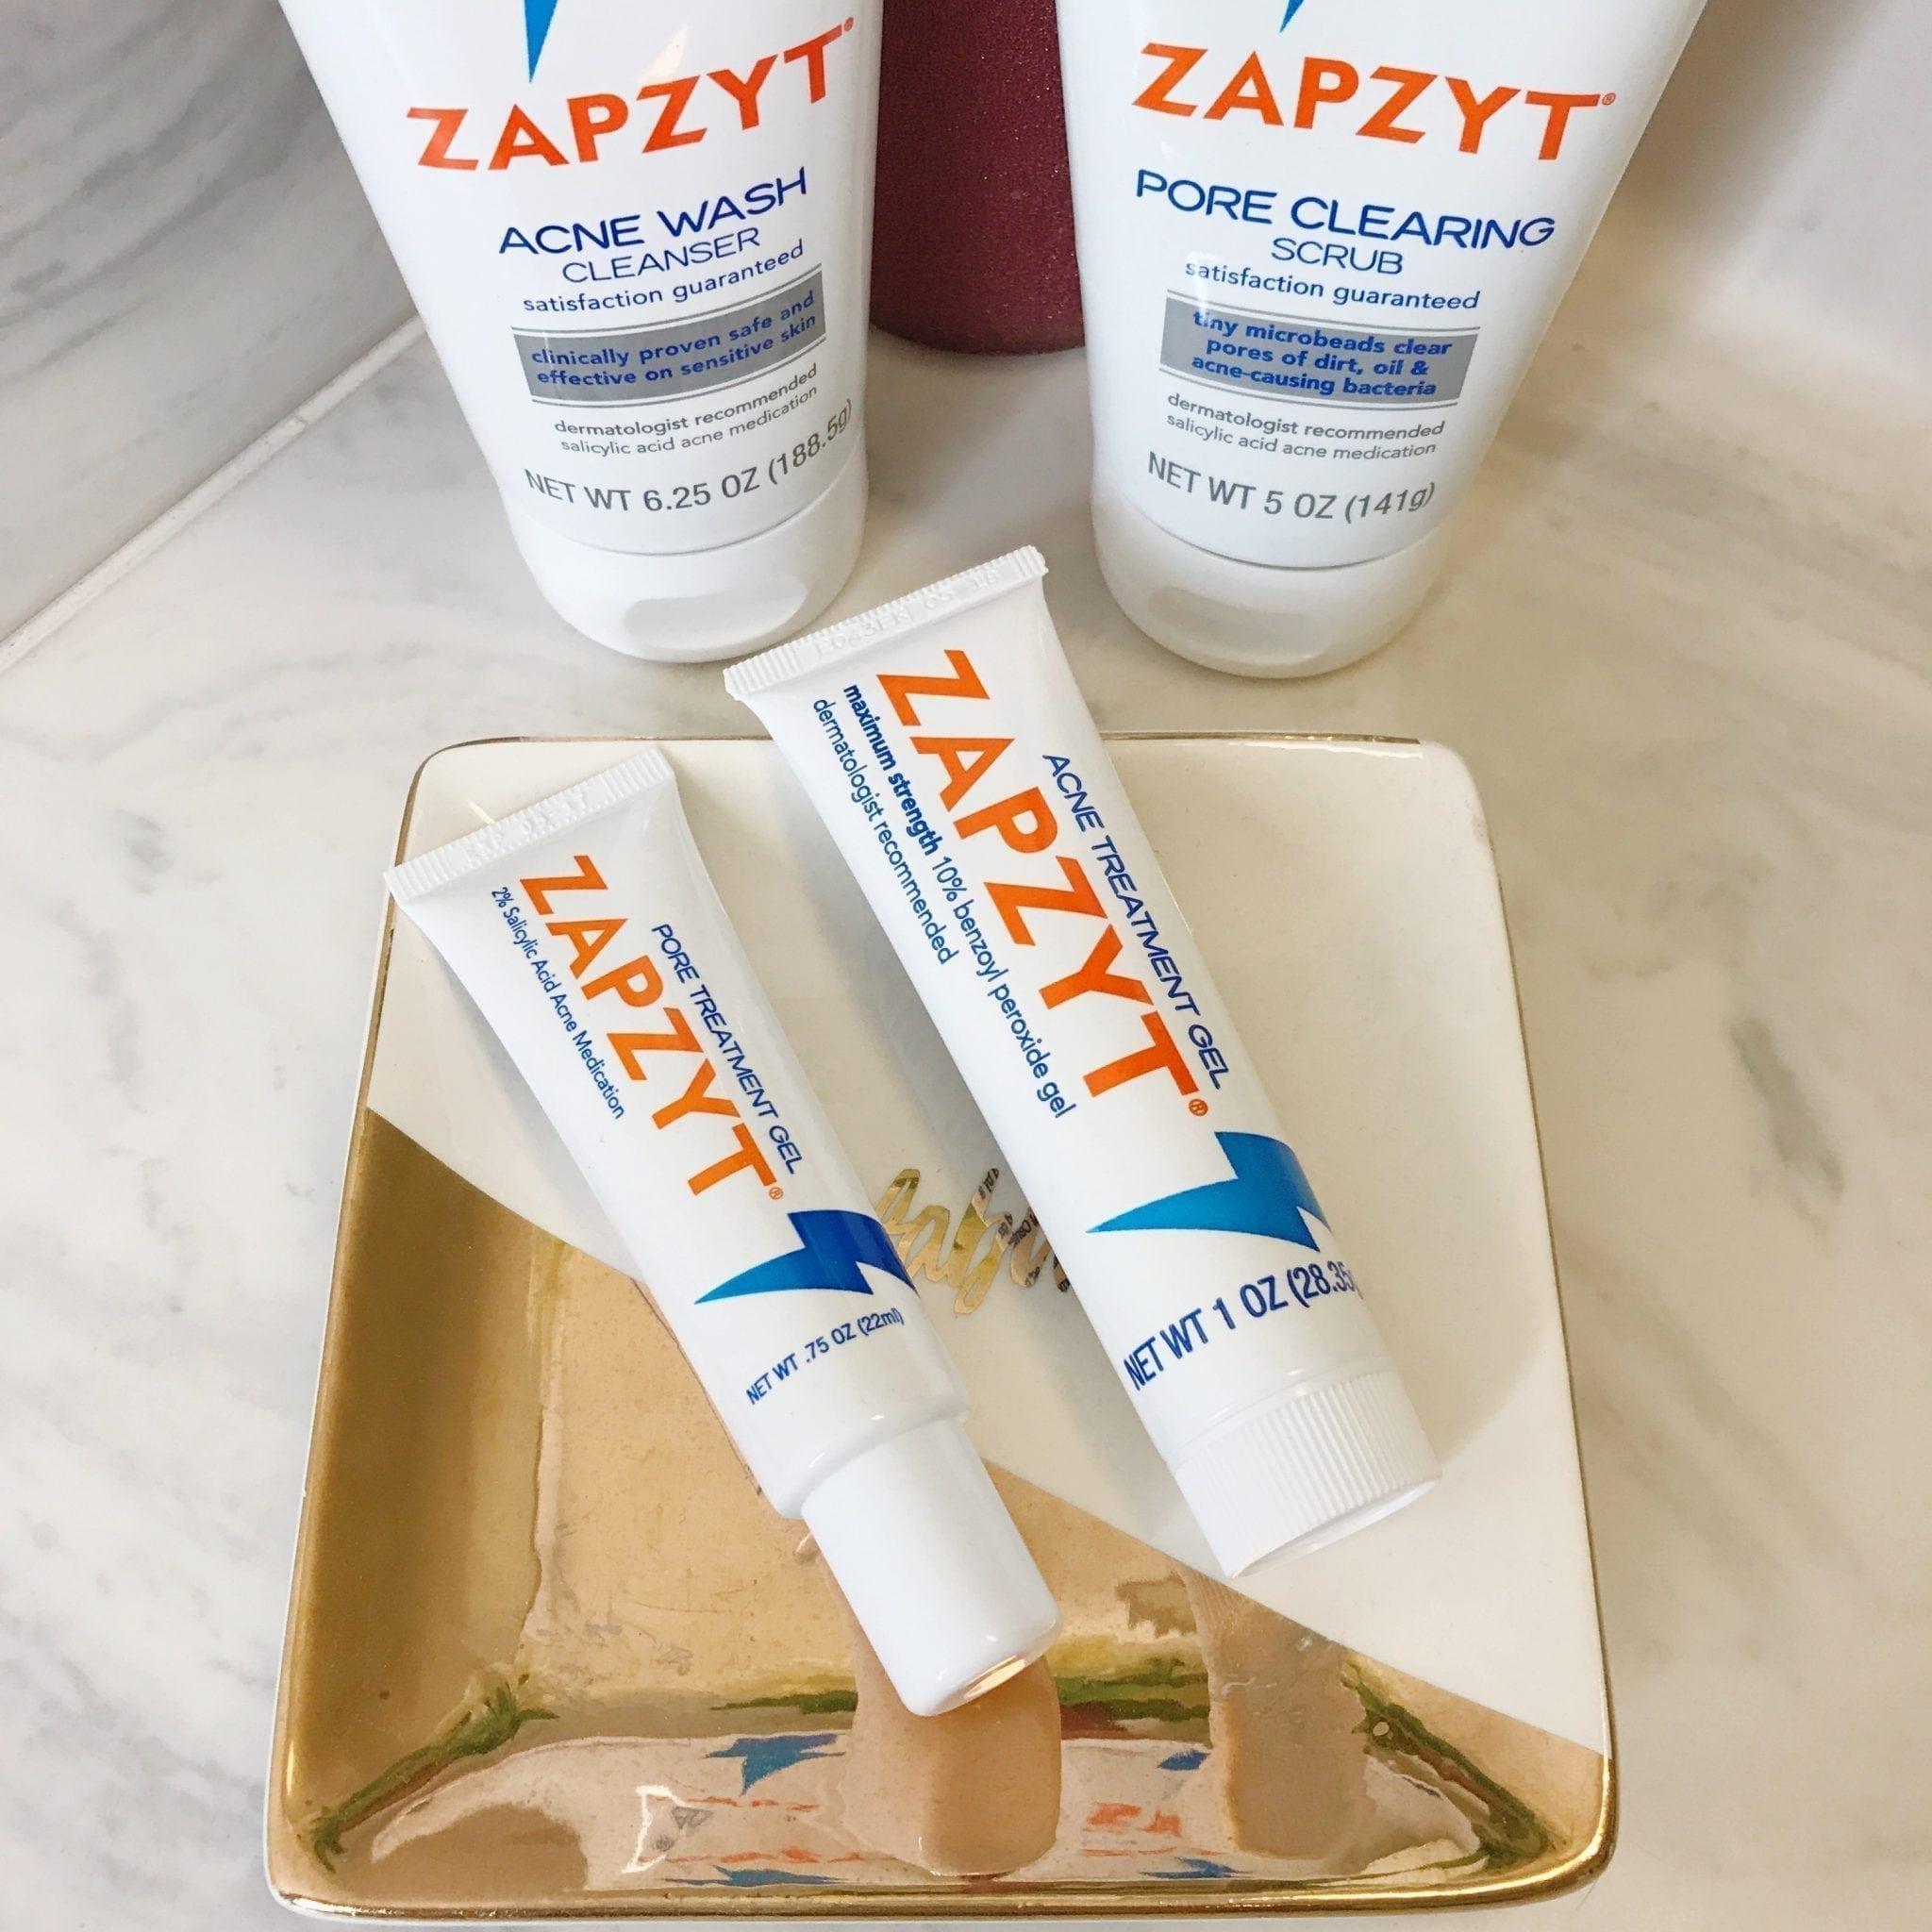 Battle Adult Acne With Zapzyt Jasmine Maria